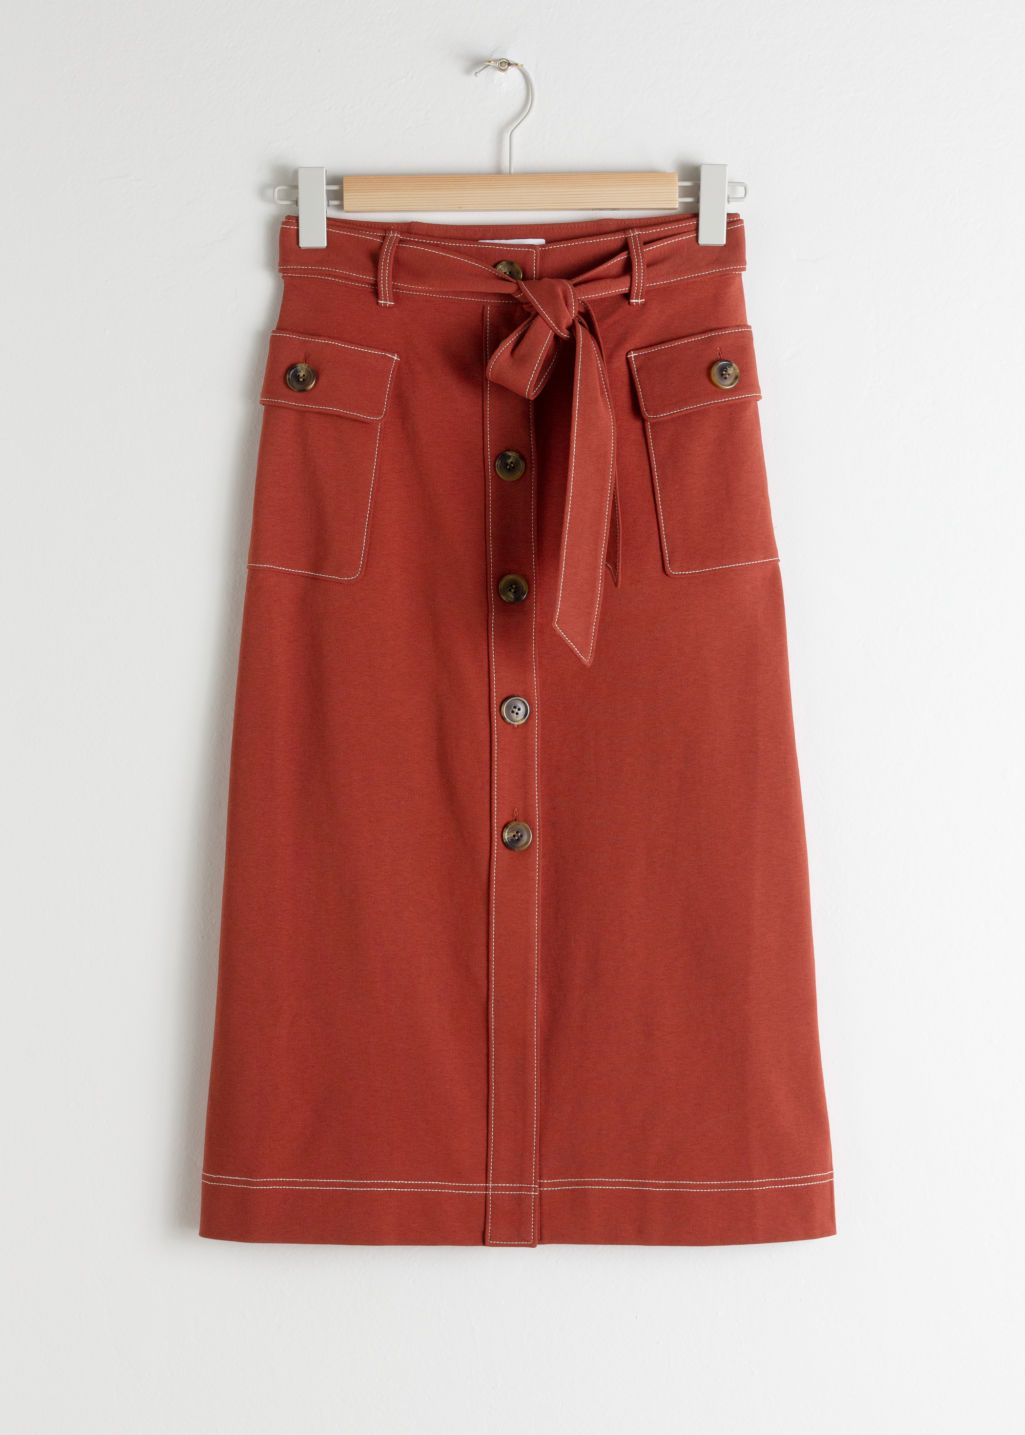 3b0592dc01 Belted A-Line Workwear Midi Skirt - Rust - Midi skirts - & Other Stories